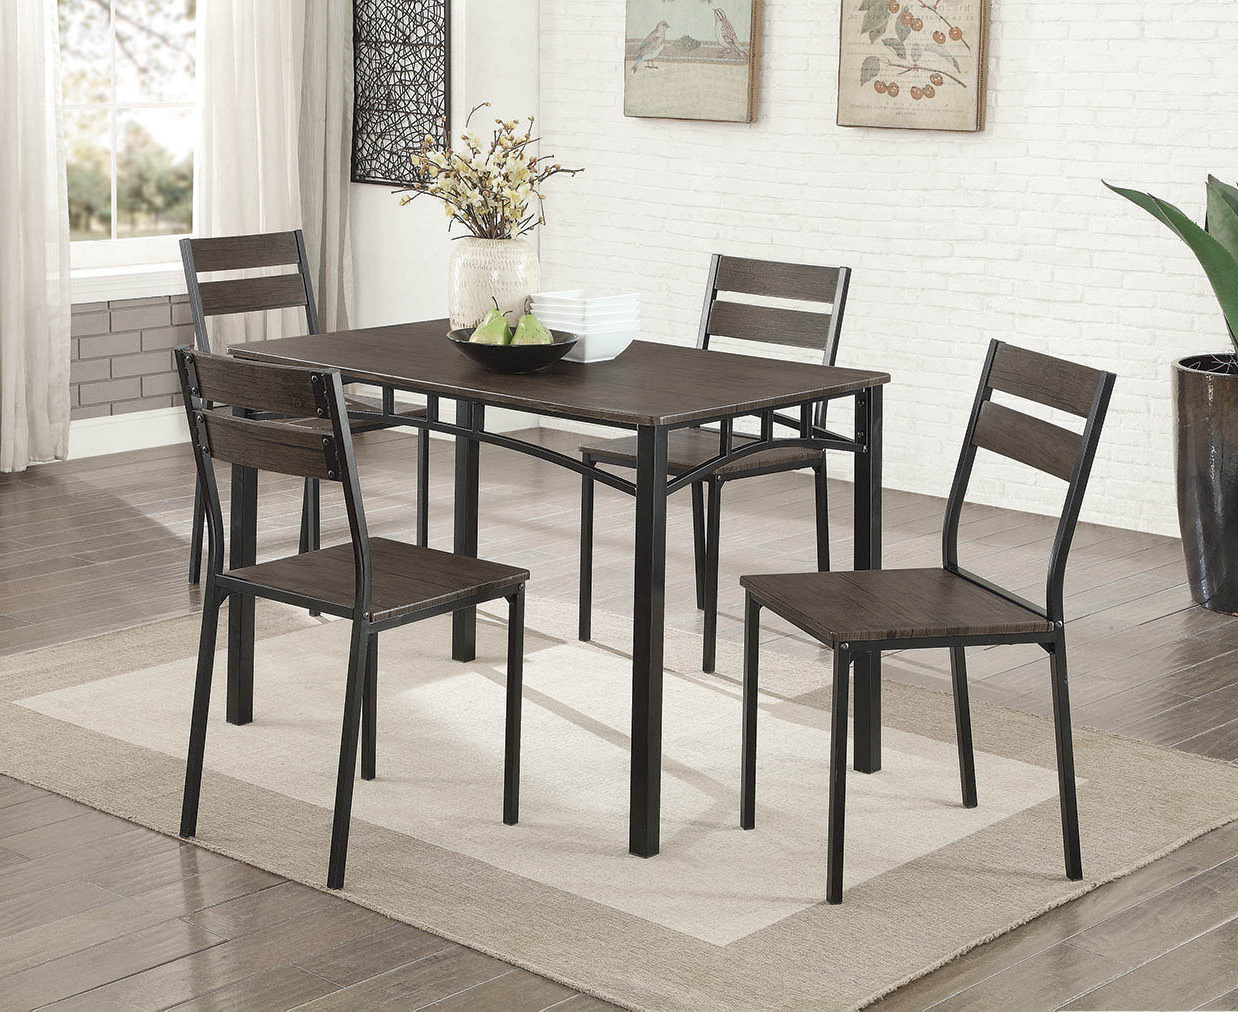 Wayfair Throughout 2019 Tejeda 5 Piece Dining Sets (View 5 of 25)